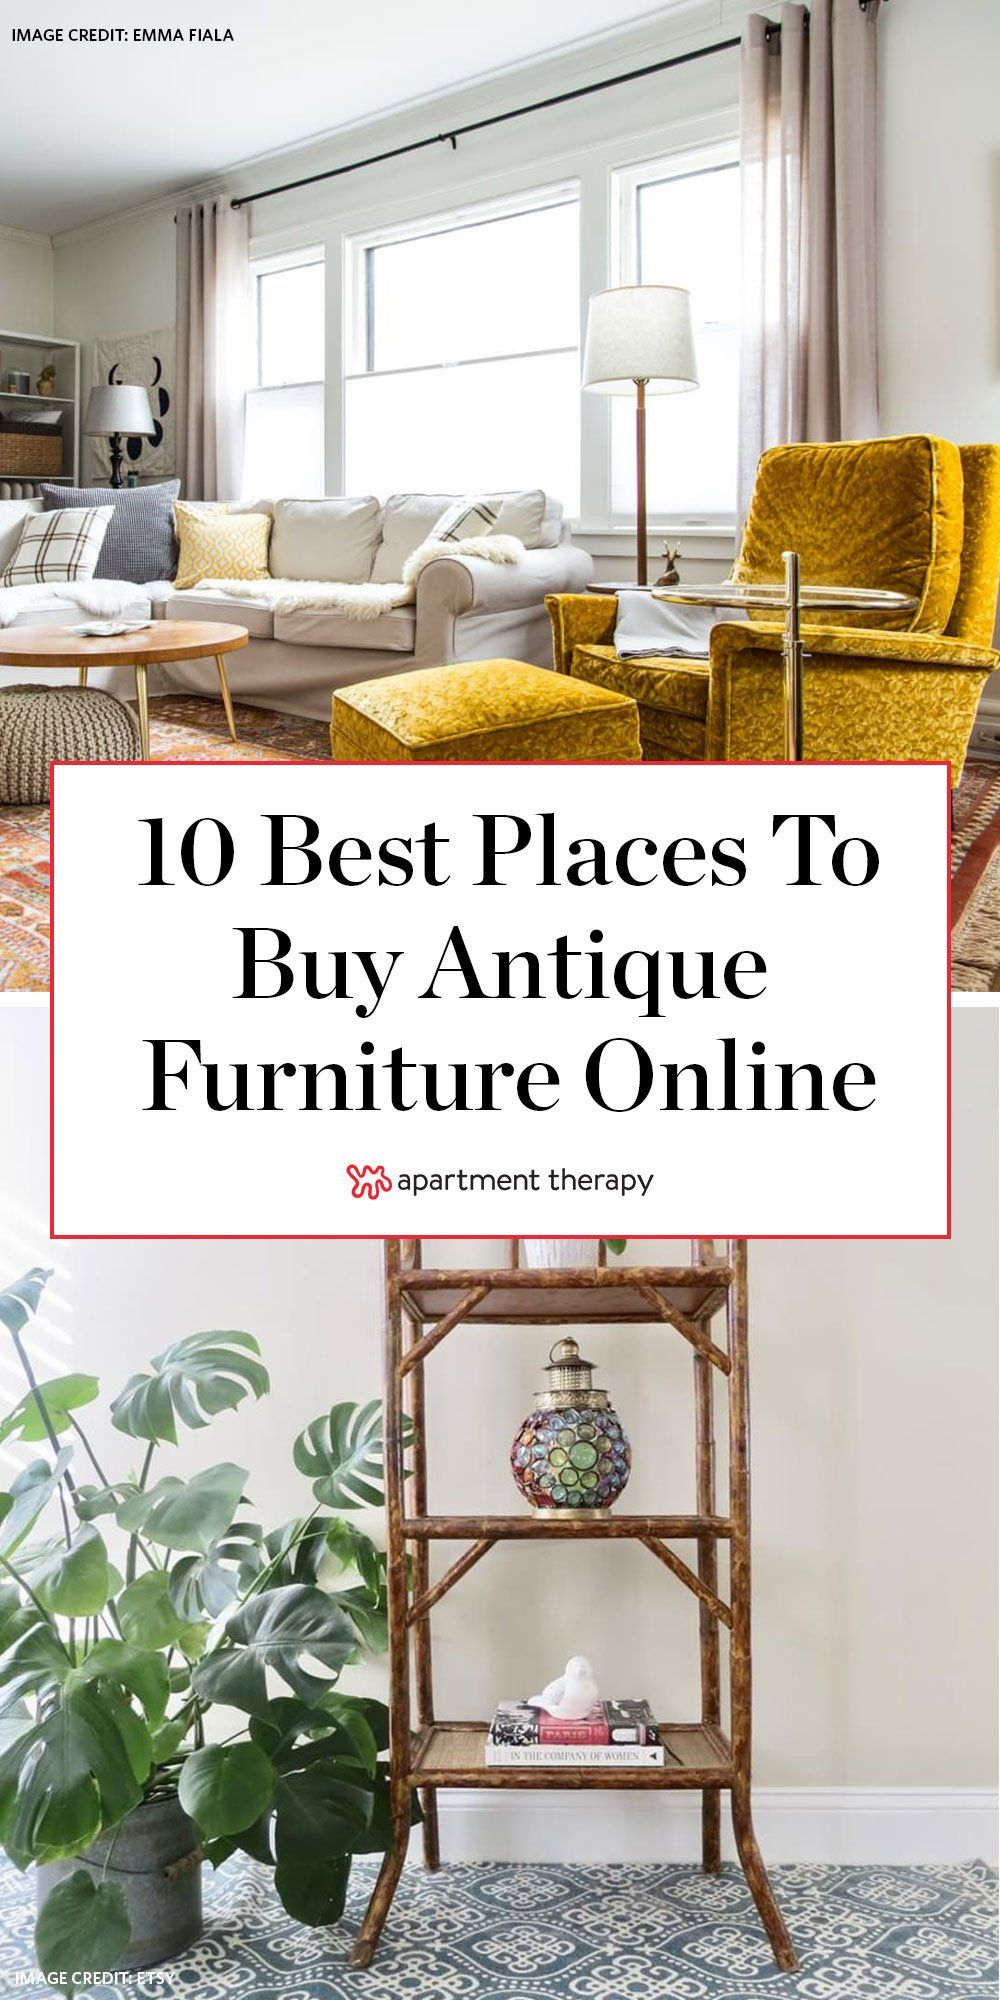 10 Places To Buy Antique And Vintage Furniture Online In 2020 Best Furniture Online Online Furniture Vintage Furniture